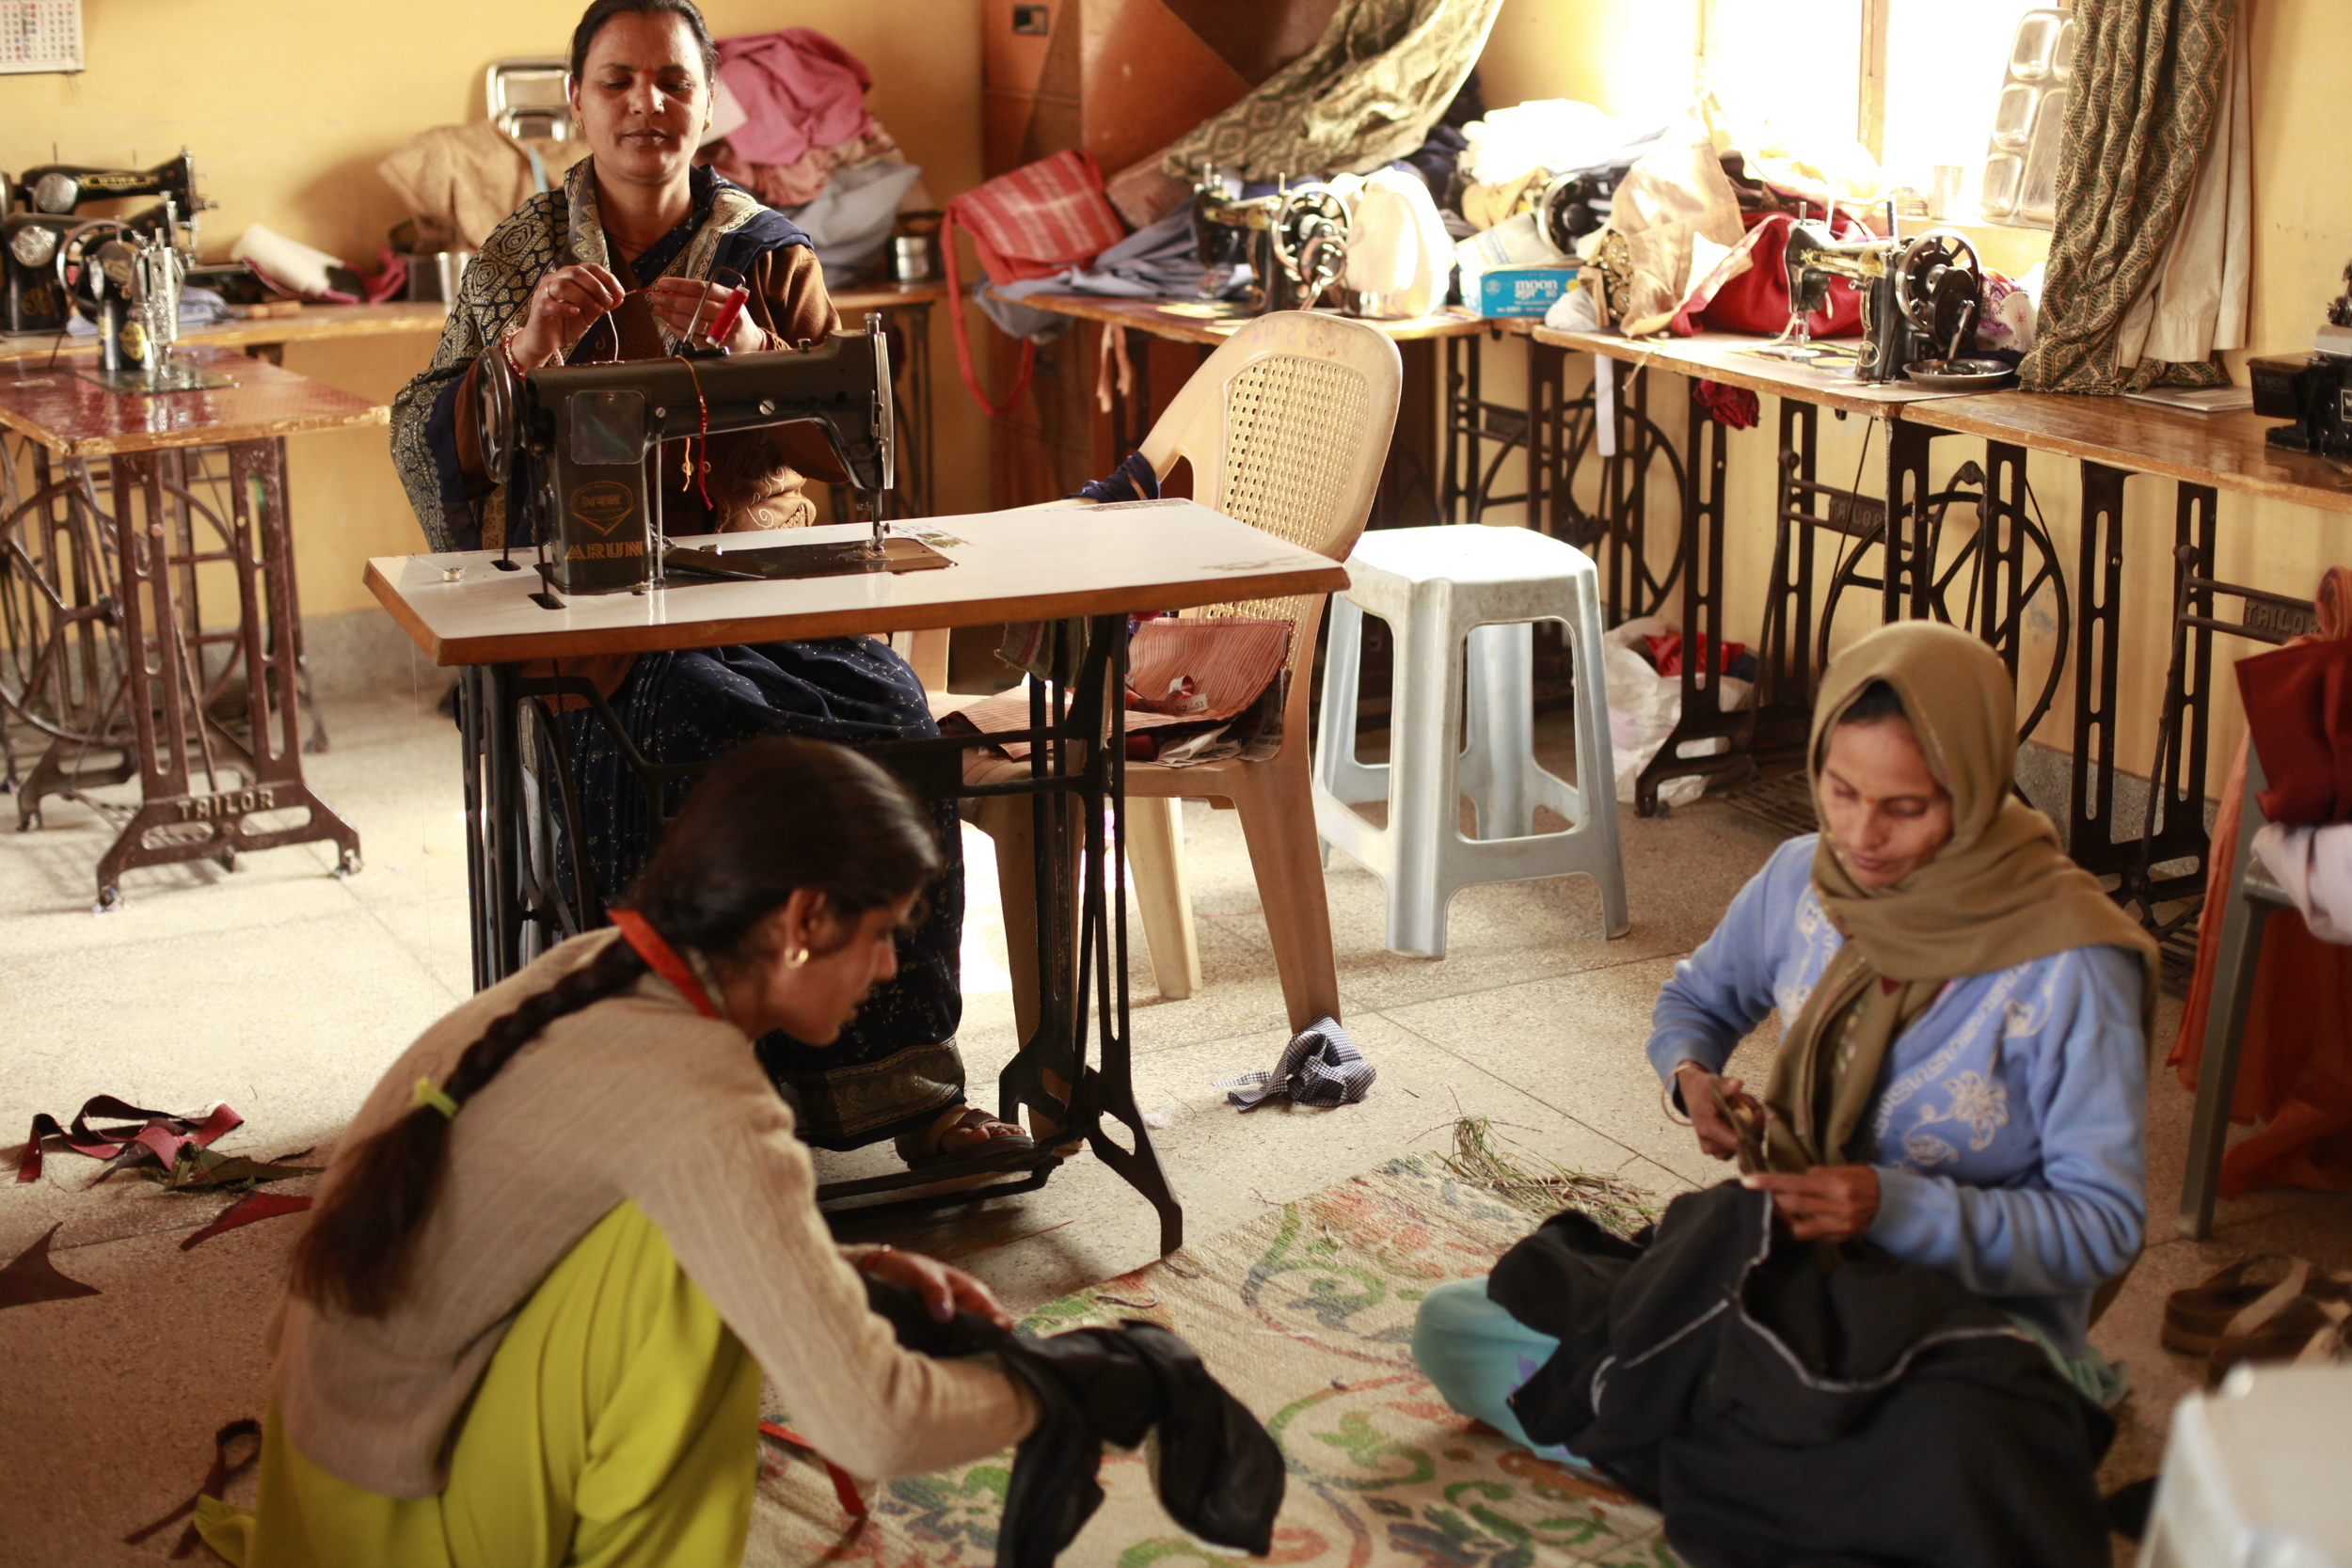 sewing-center--india-made-with-a-purpose.jpg